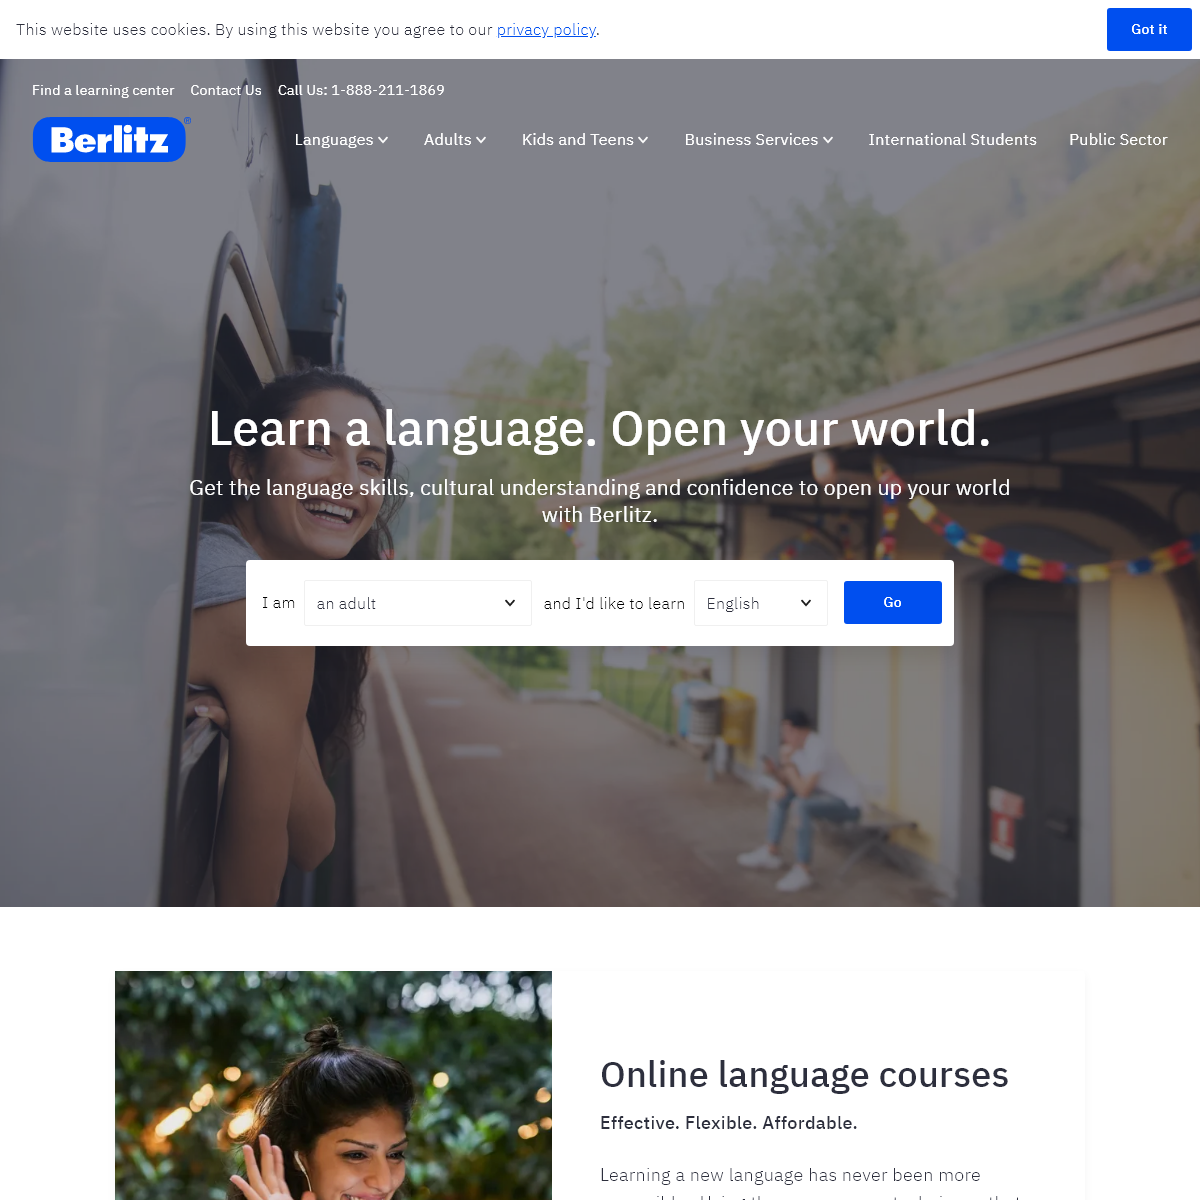 Learn a New Language - Language Classes and Training - Berlitz